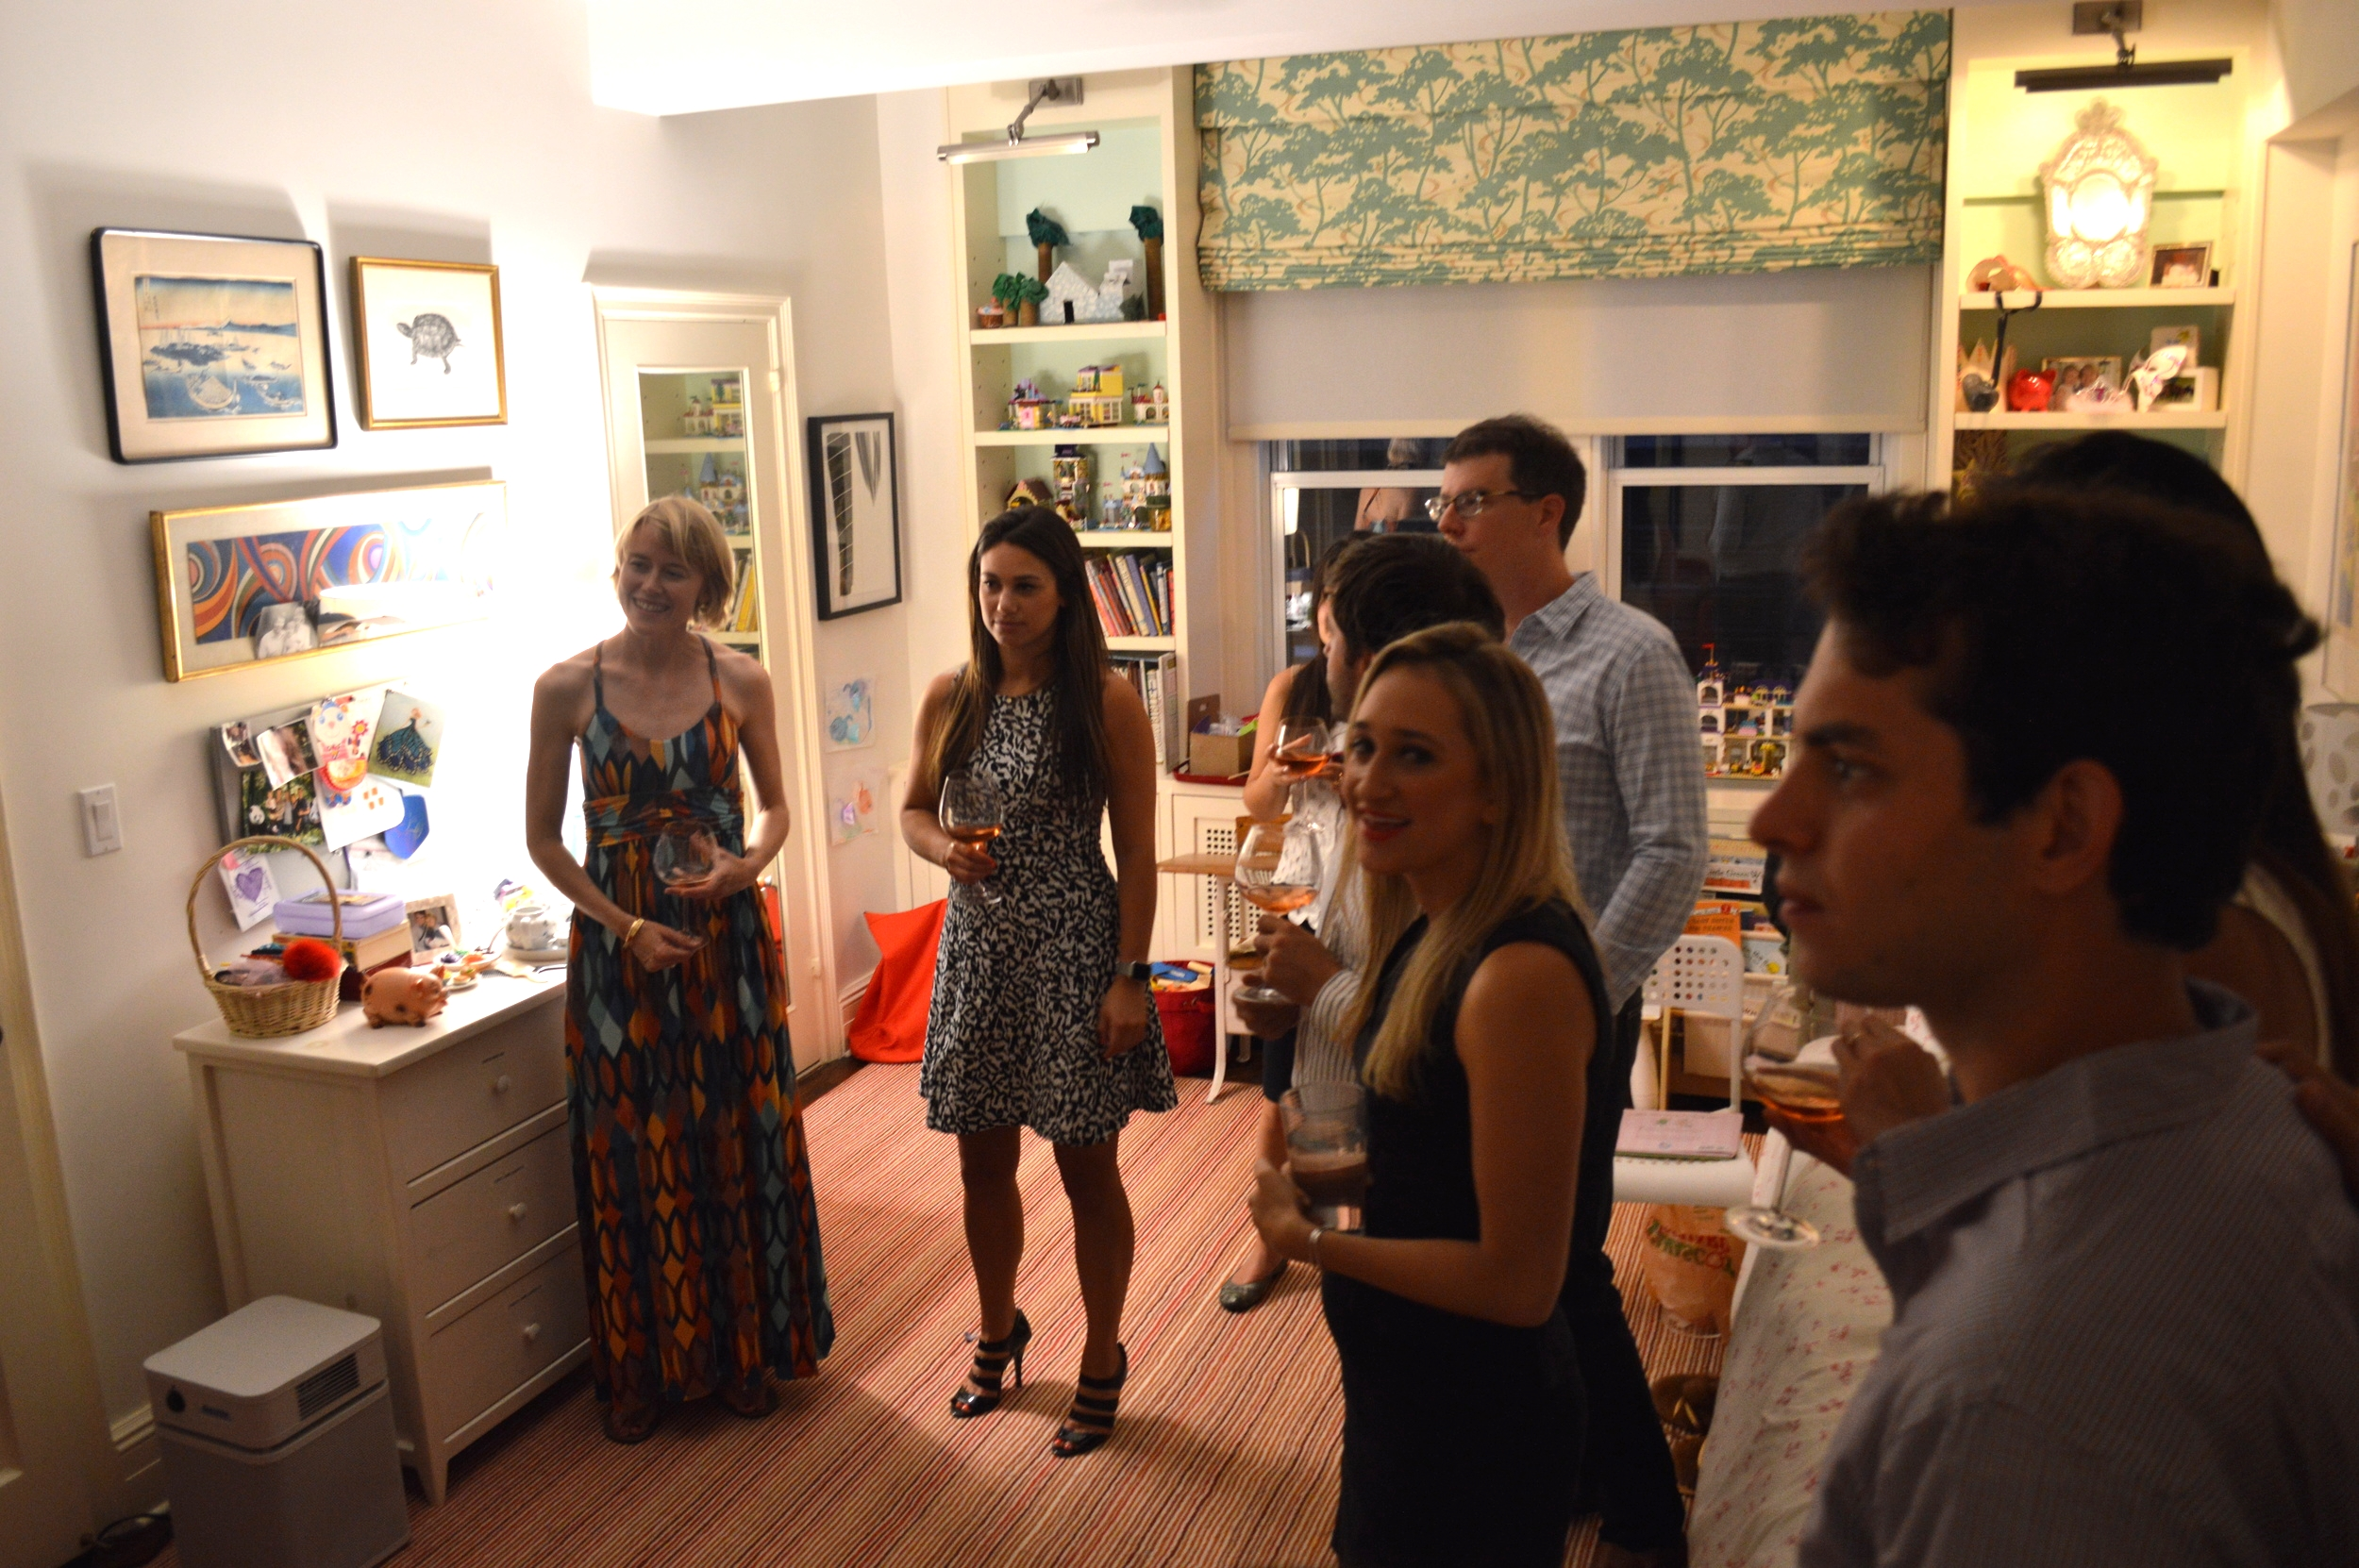 Members and guests learning about the Geary's private art collection at their home in Manhattan